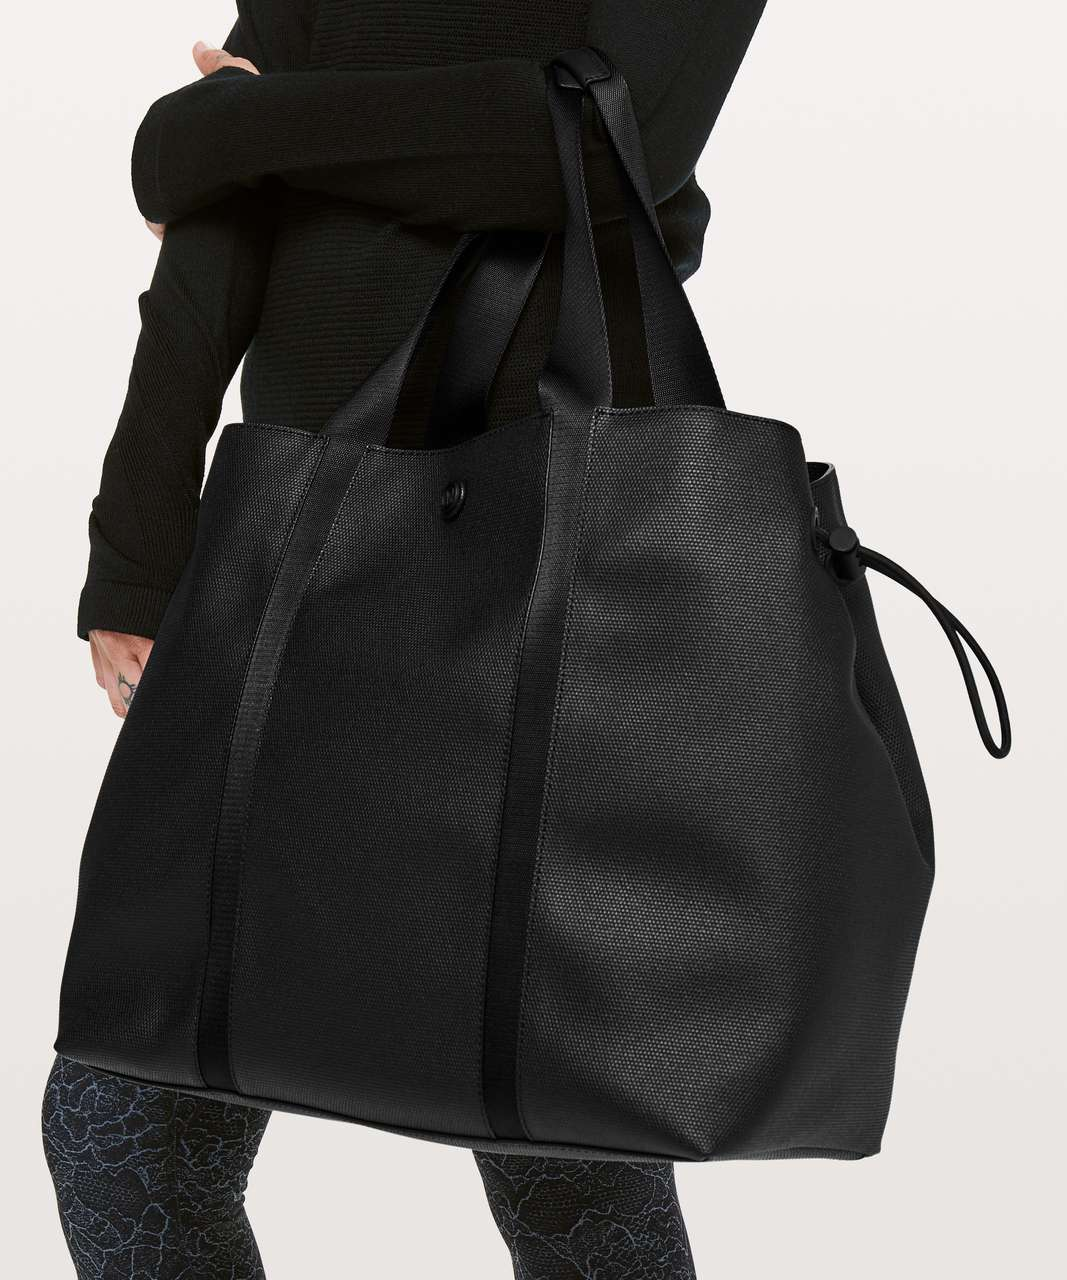 Lululemon Day Out Tote *16L - Black